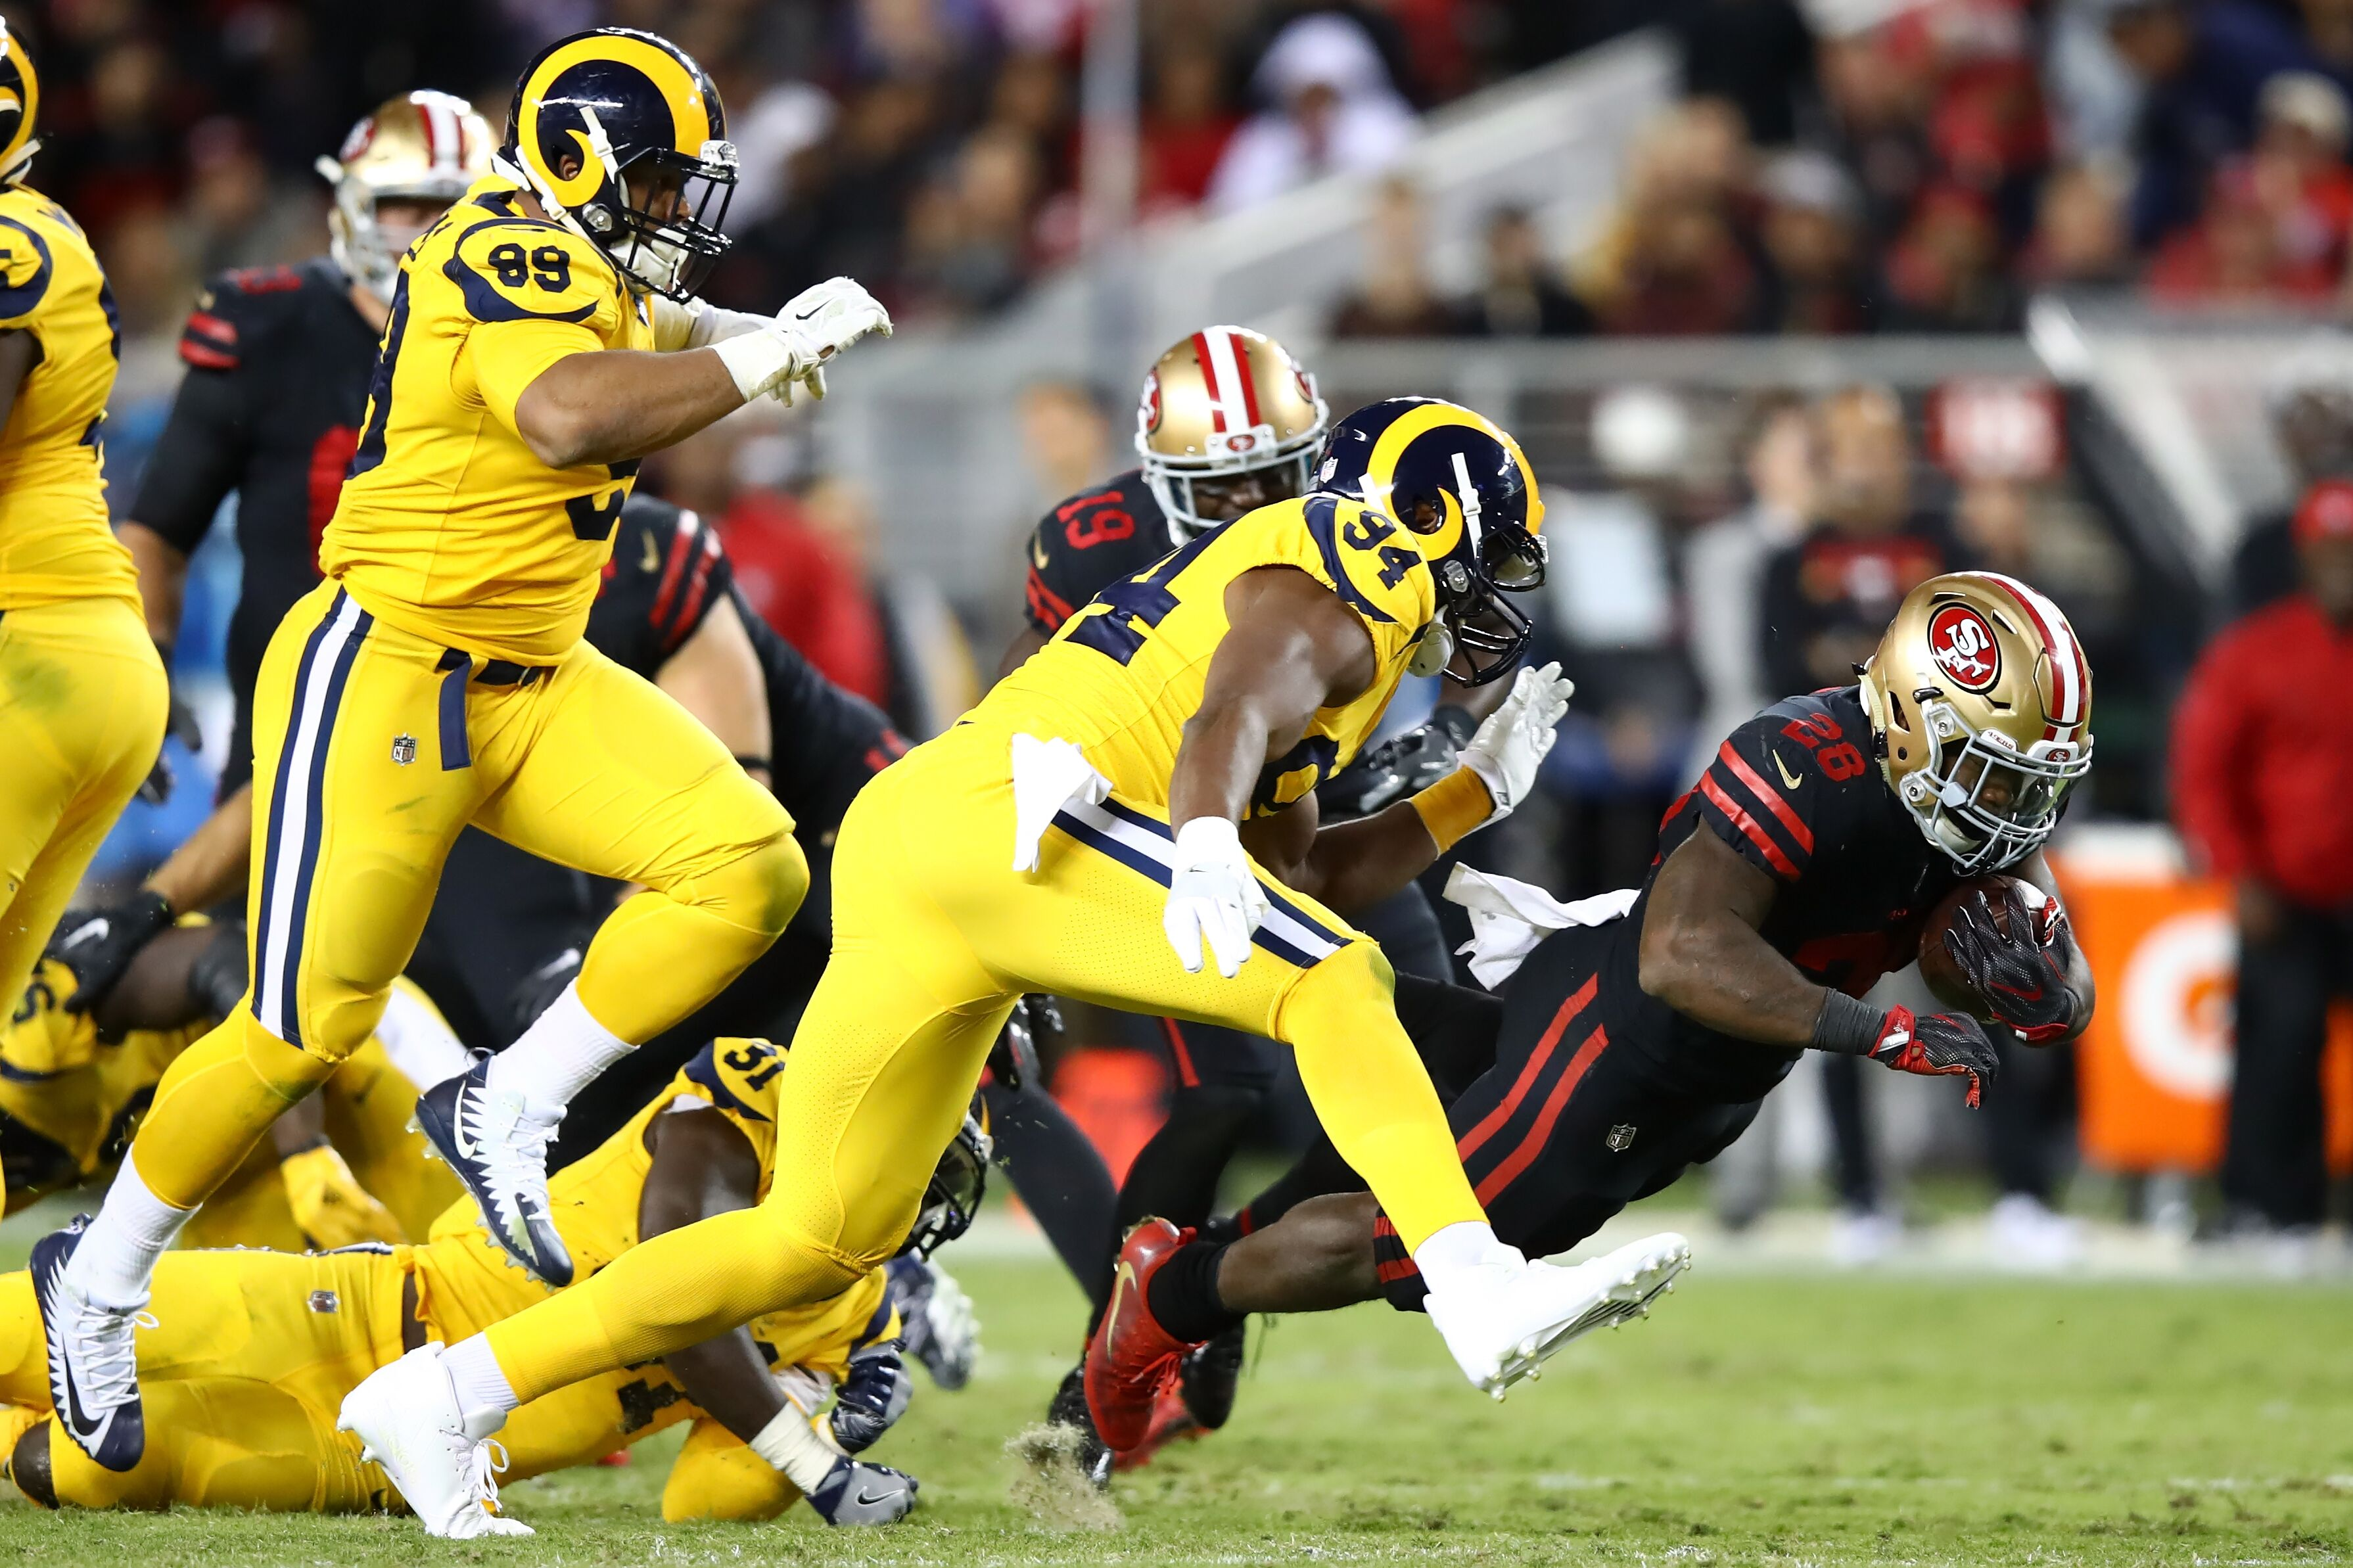 c4a12424556 Los Angeles Rams: Can fans say goodbye to those Color Rush uniforms?